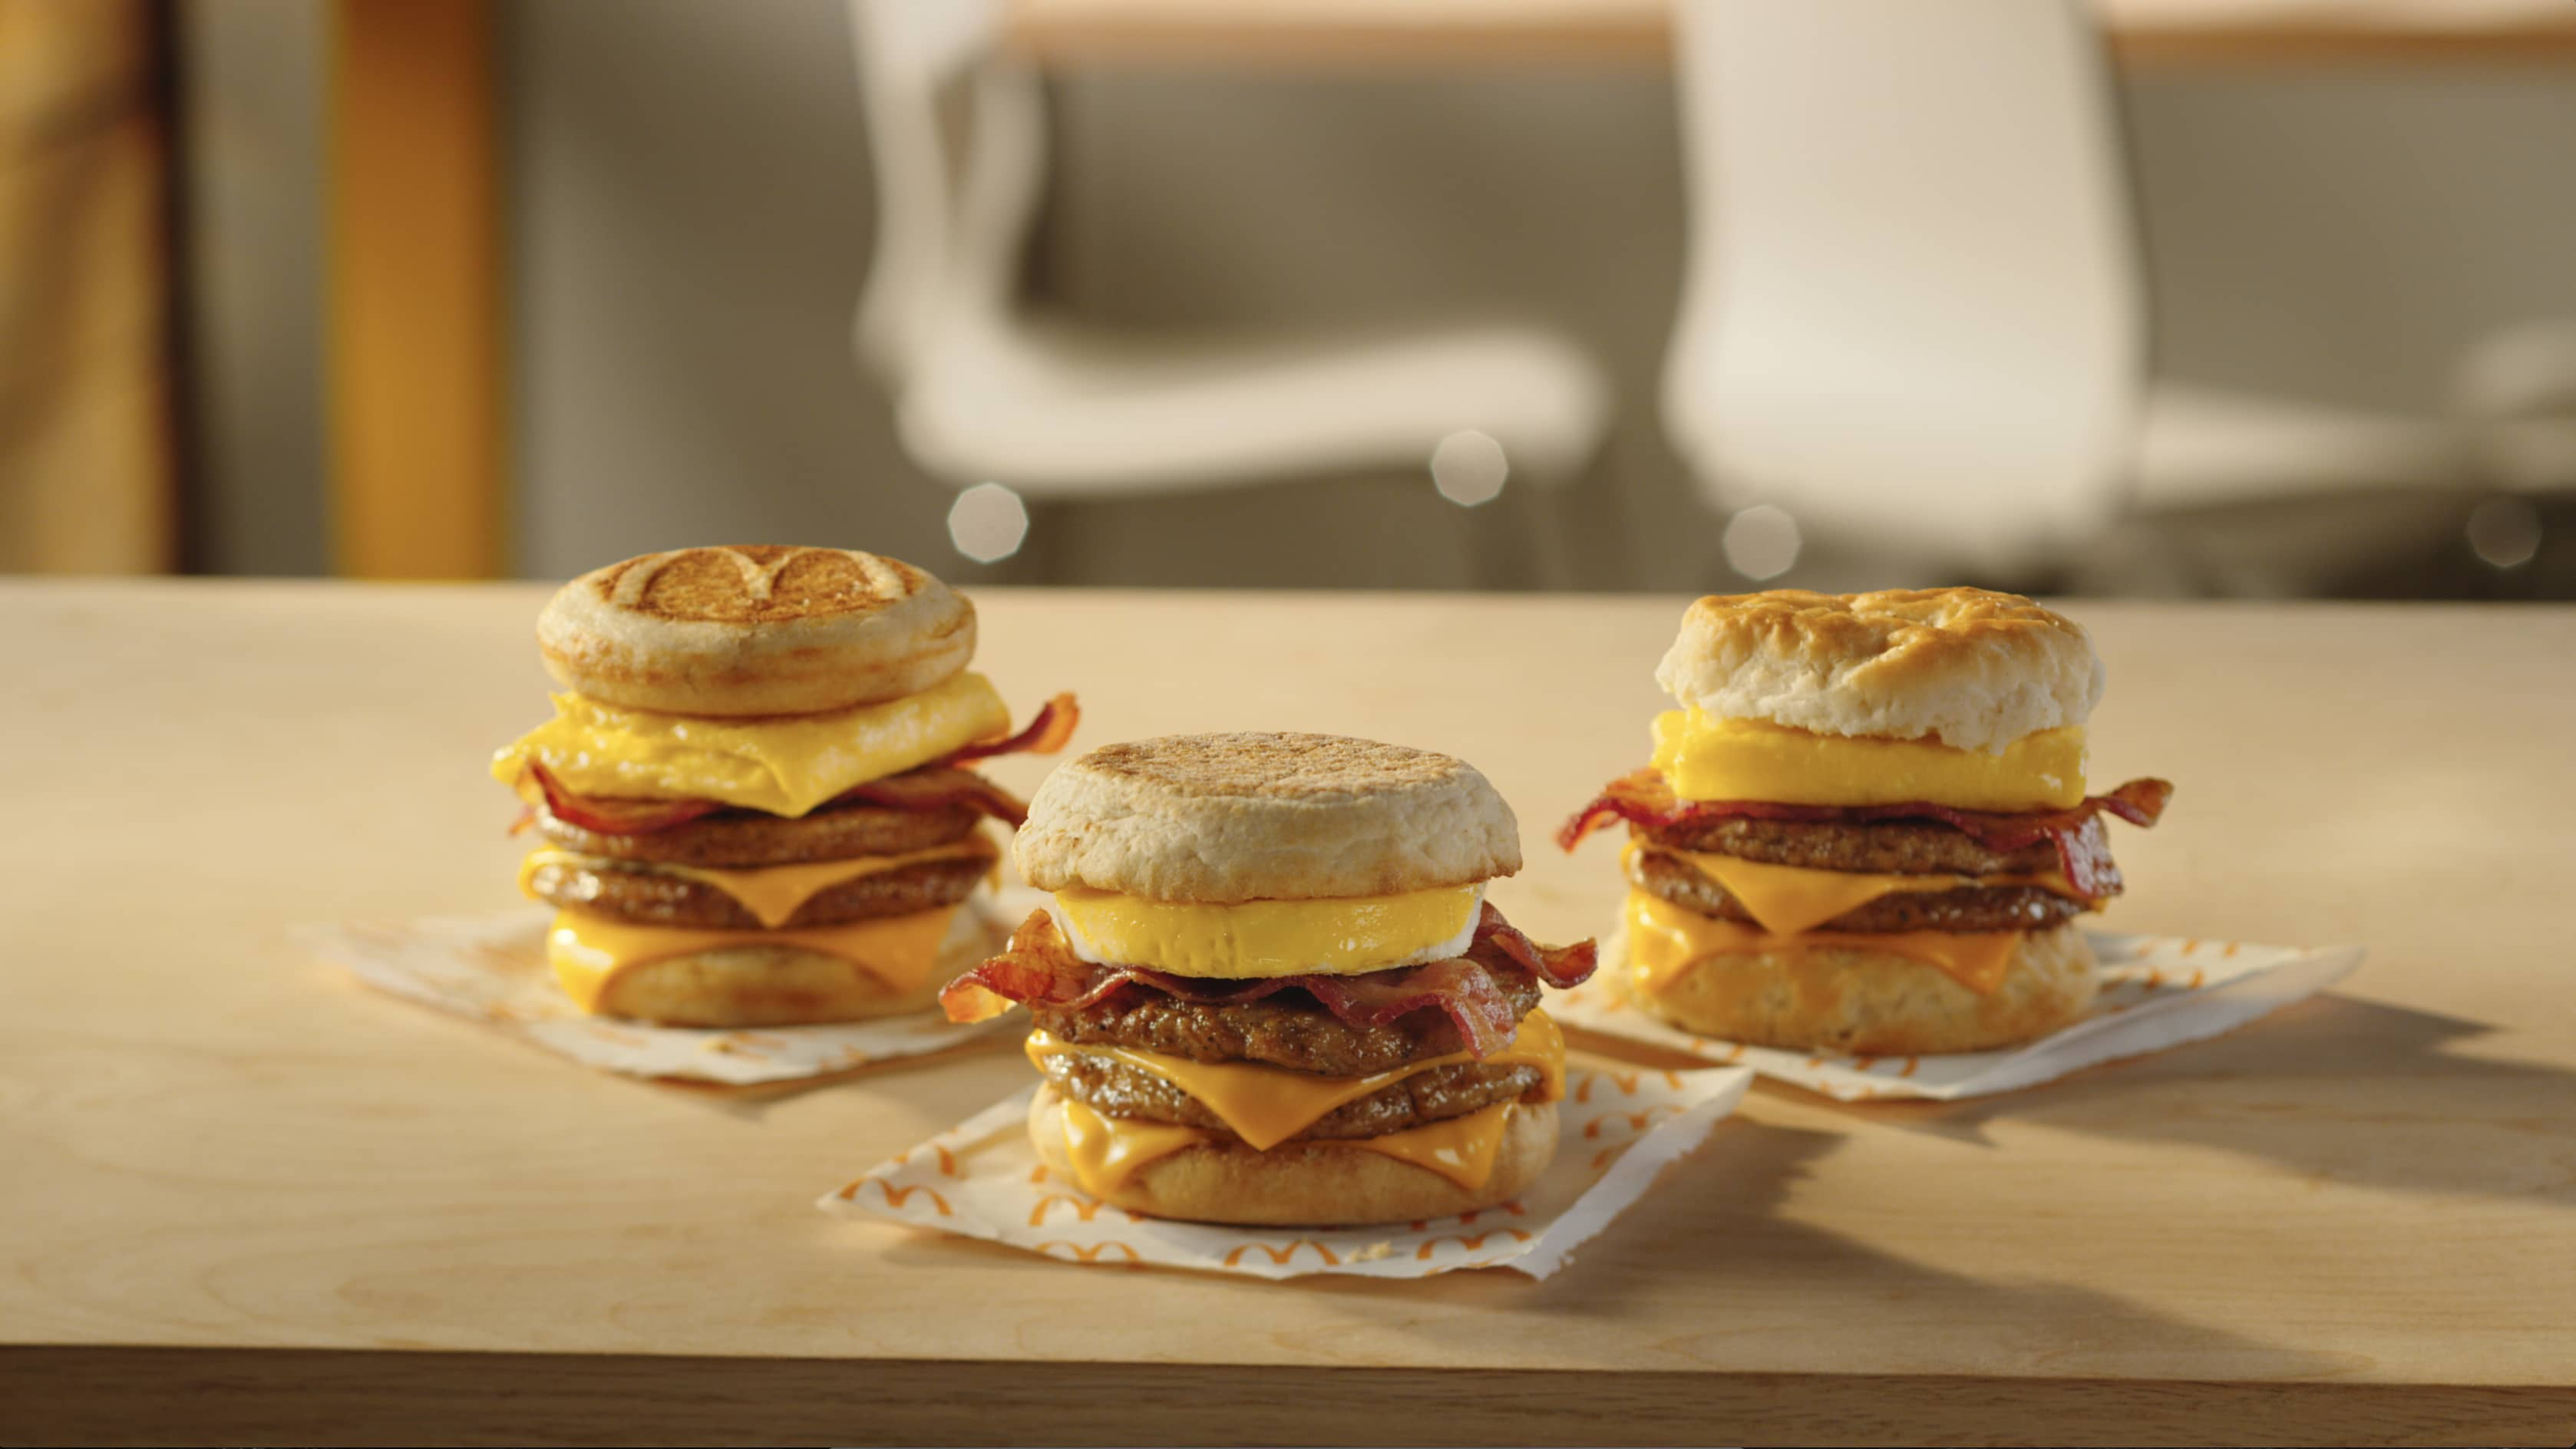 What time is breakfast over at mcdonalds near me